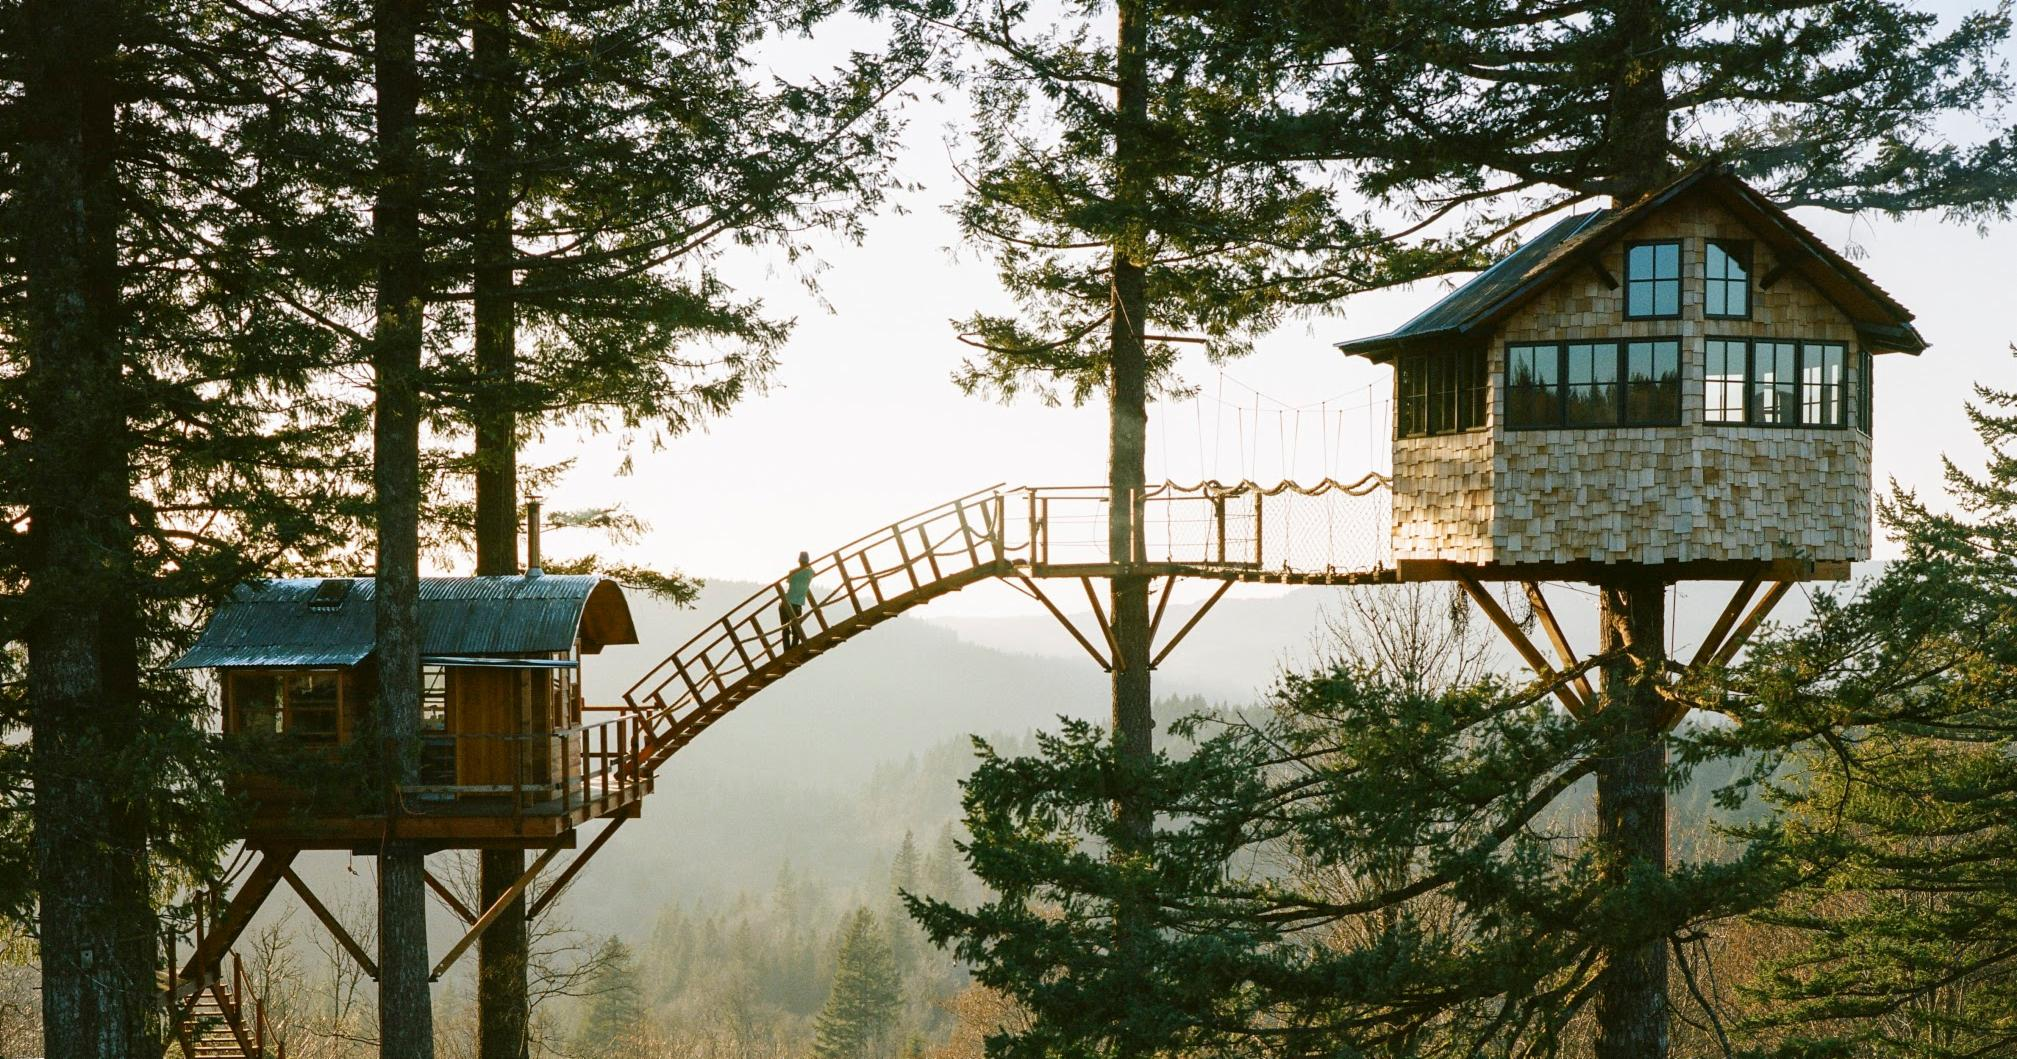 8 Awe-Inspiring Treehouses around the World